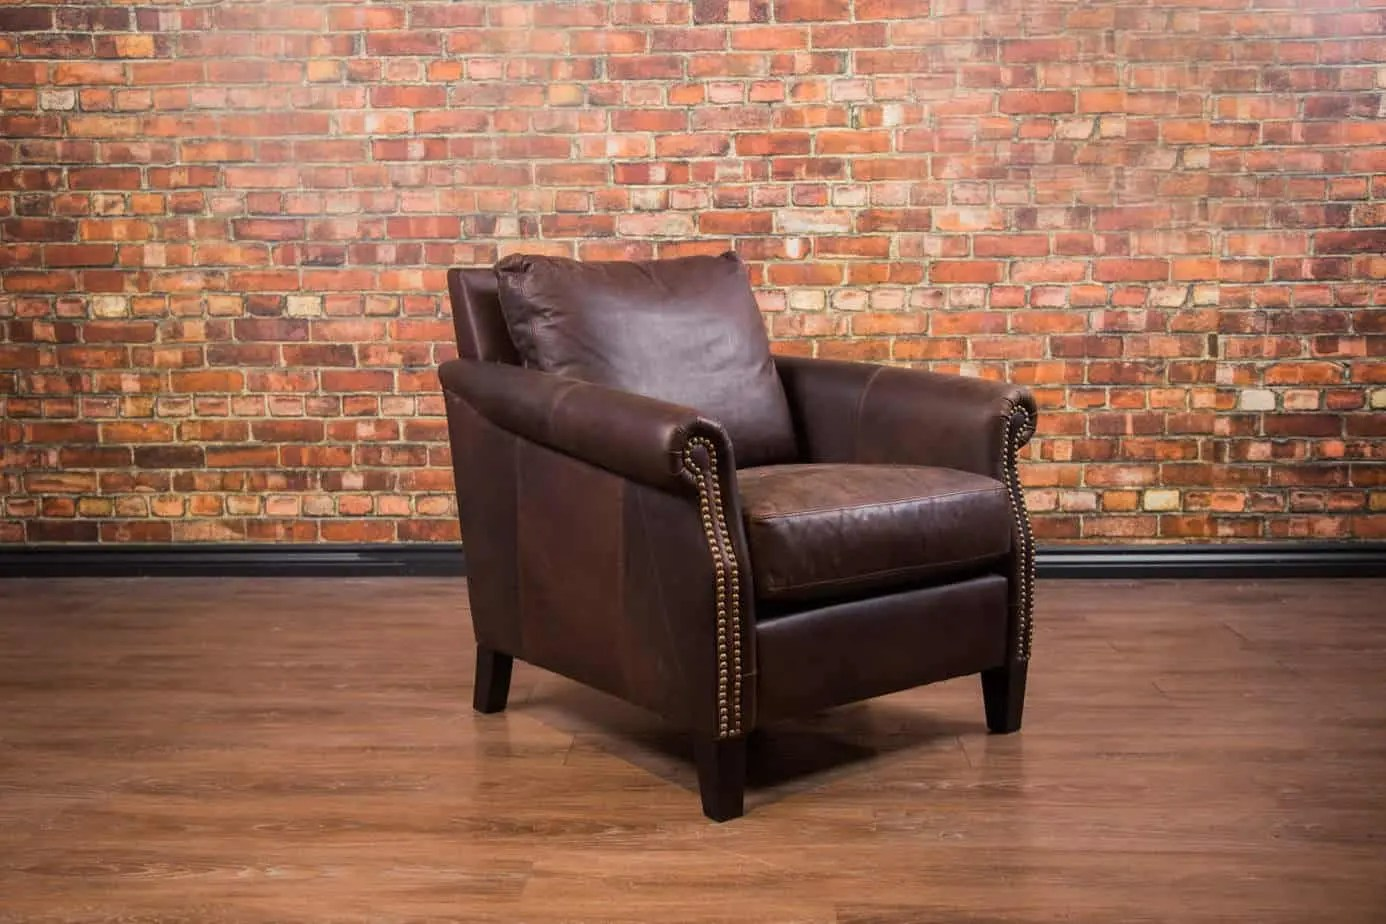 Leather Recliner Chairs Canada The Cottage Leather Chair Collection Canada 39s Boss